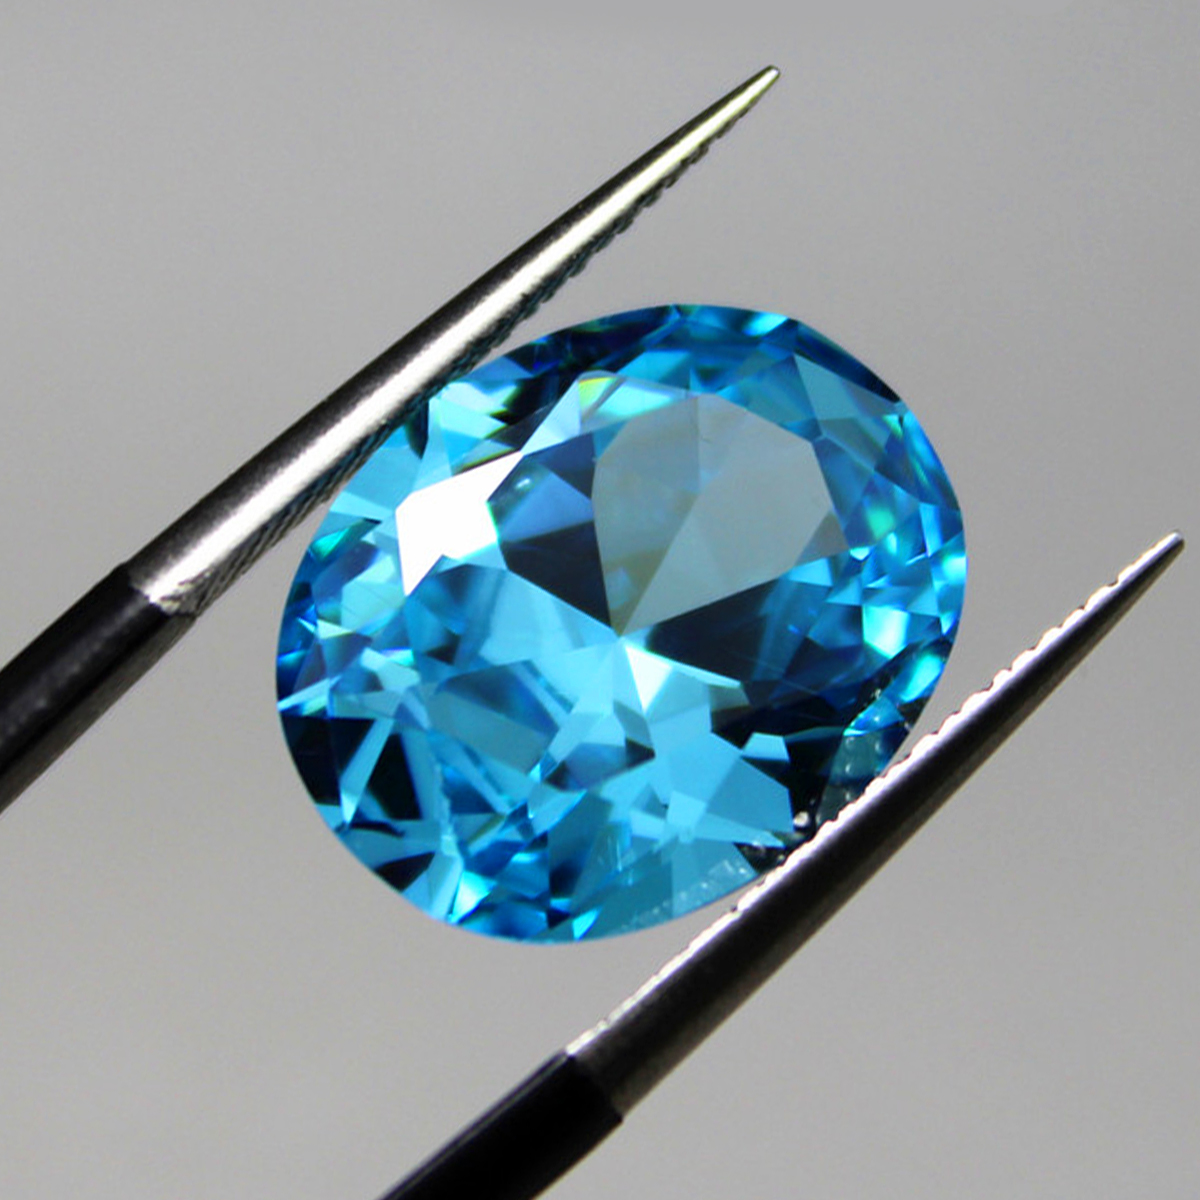 10x12mm Diamond Oval Light Blue Artificial Zircon Jewelry DIY Making Loose Gemstone Decoration